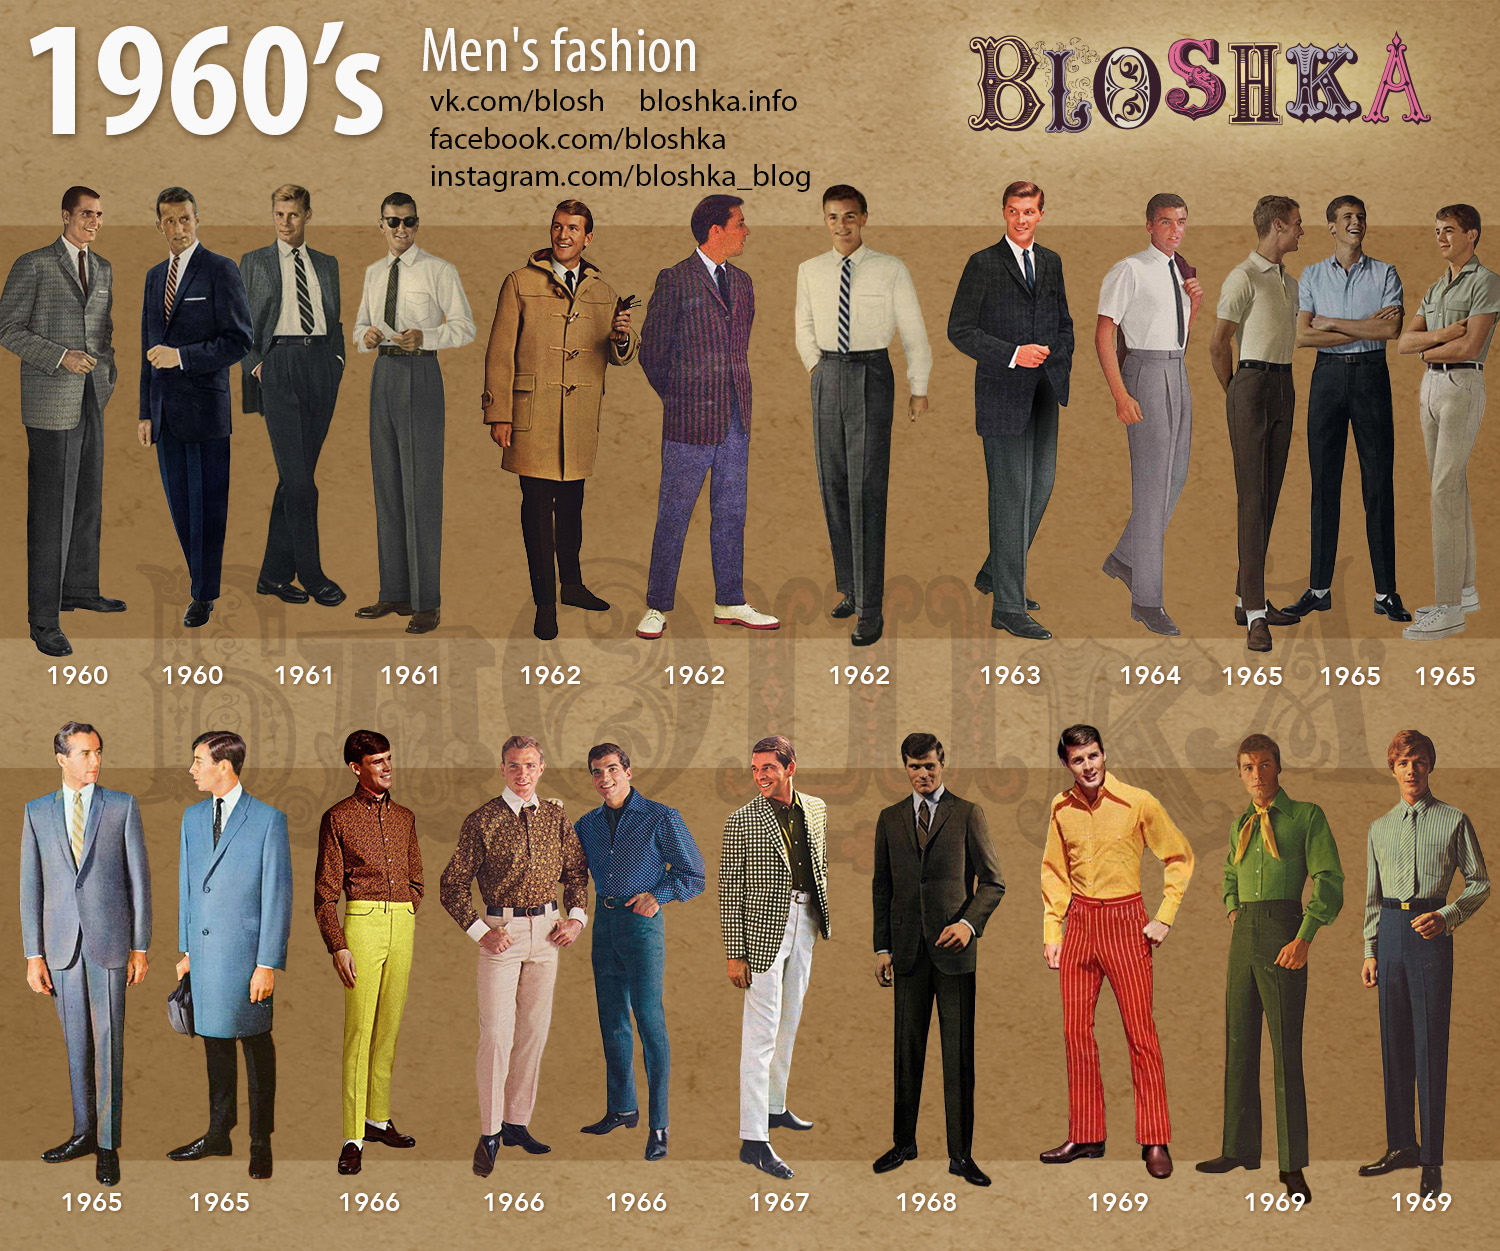 1960 S Of Fashion Bloshka